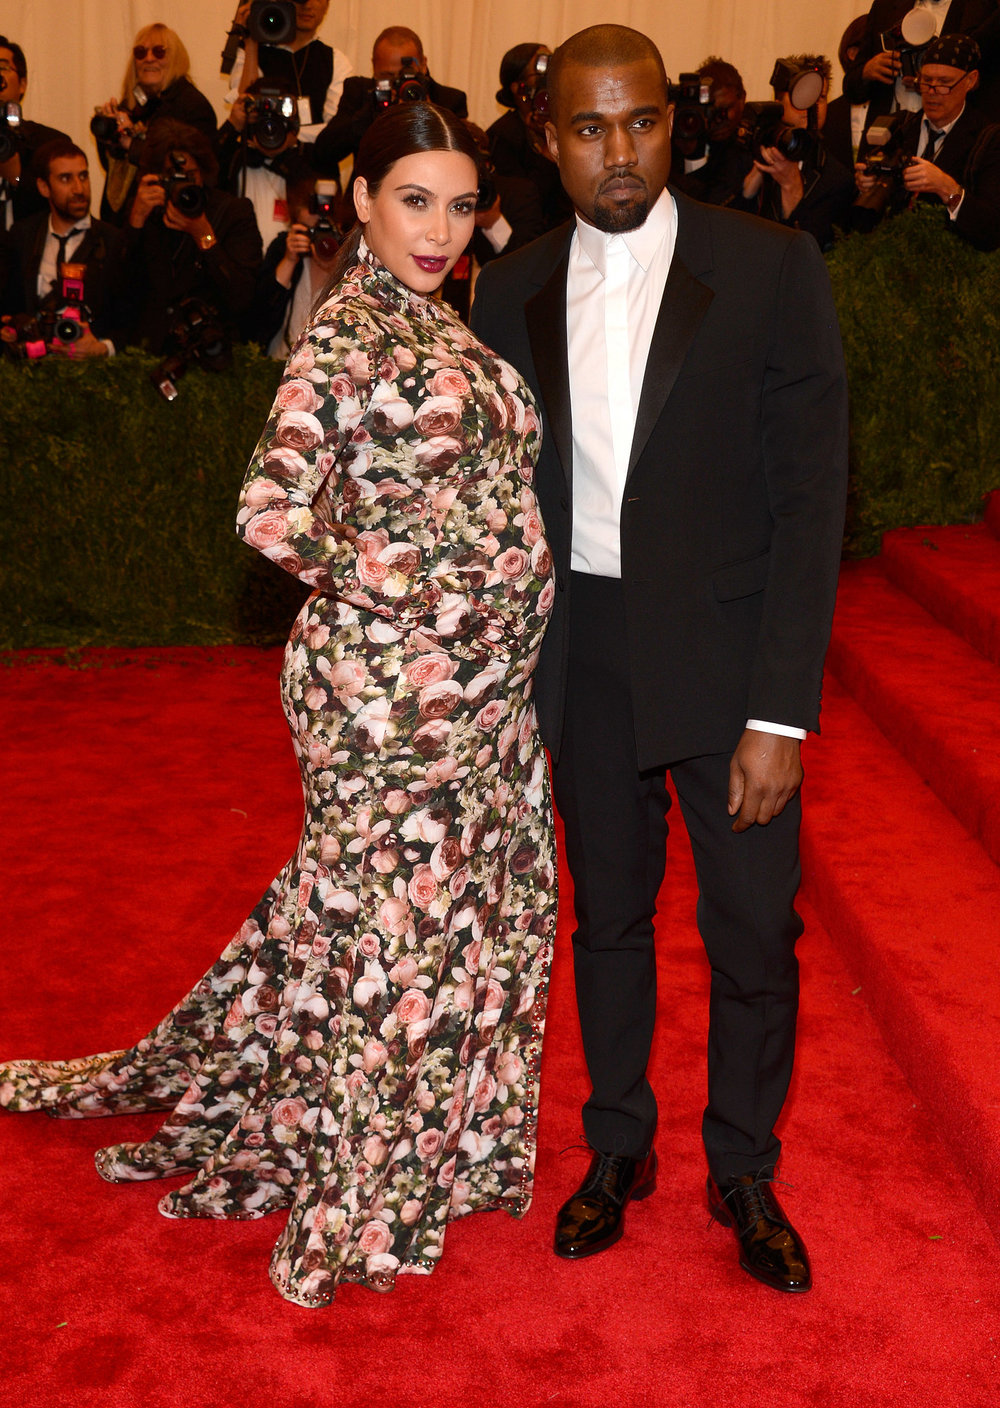 Image Source: Getty / Kevin Mazur Kim Kardashian The then Mom-to-be Kim Kardashian's floral Givenchy by Riccardo Tisci gown will likely go down in history as one of the most talked-about maternity looks of all time. Her custom look for the 2013 Met Gala featured gloved long sleeves and a thigh-high slit.